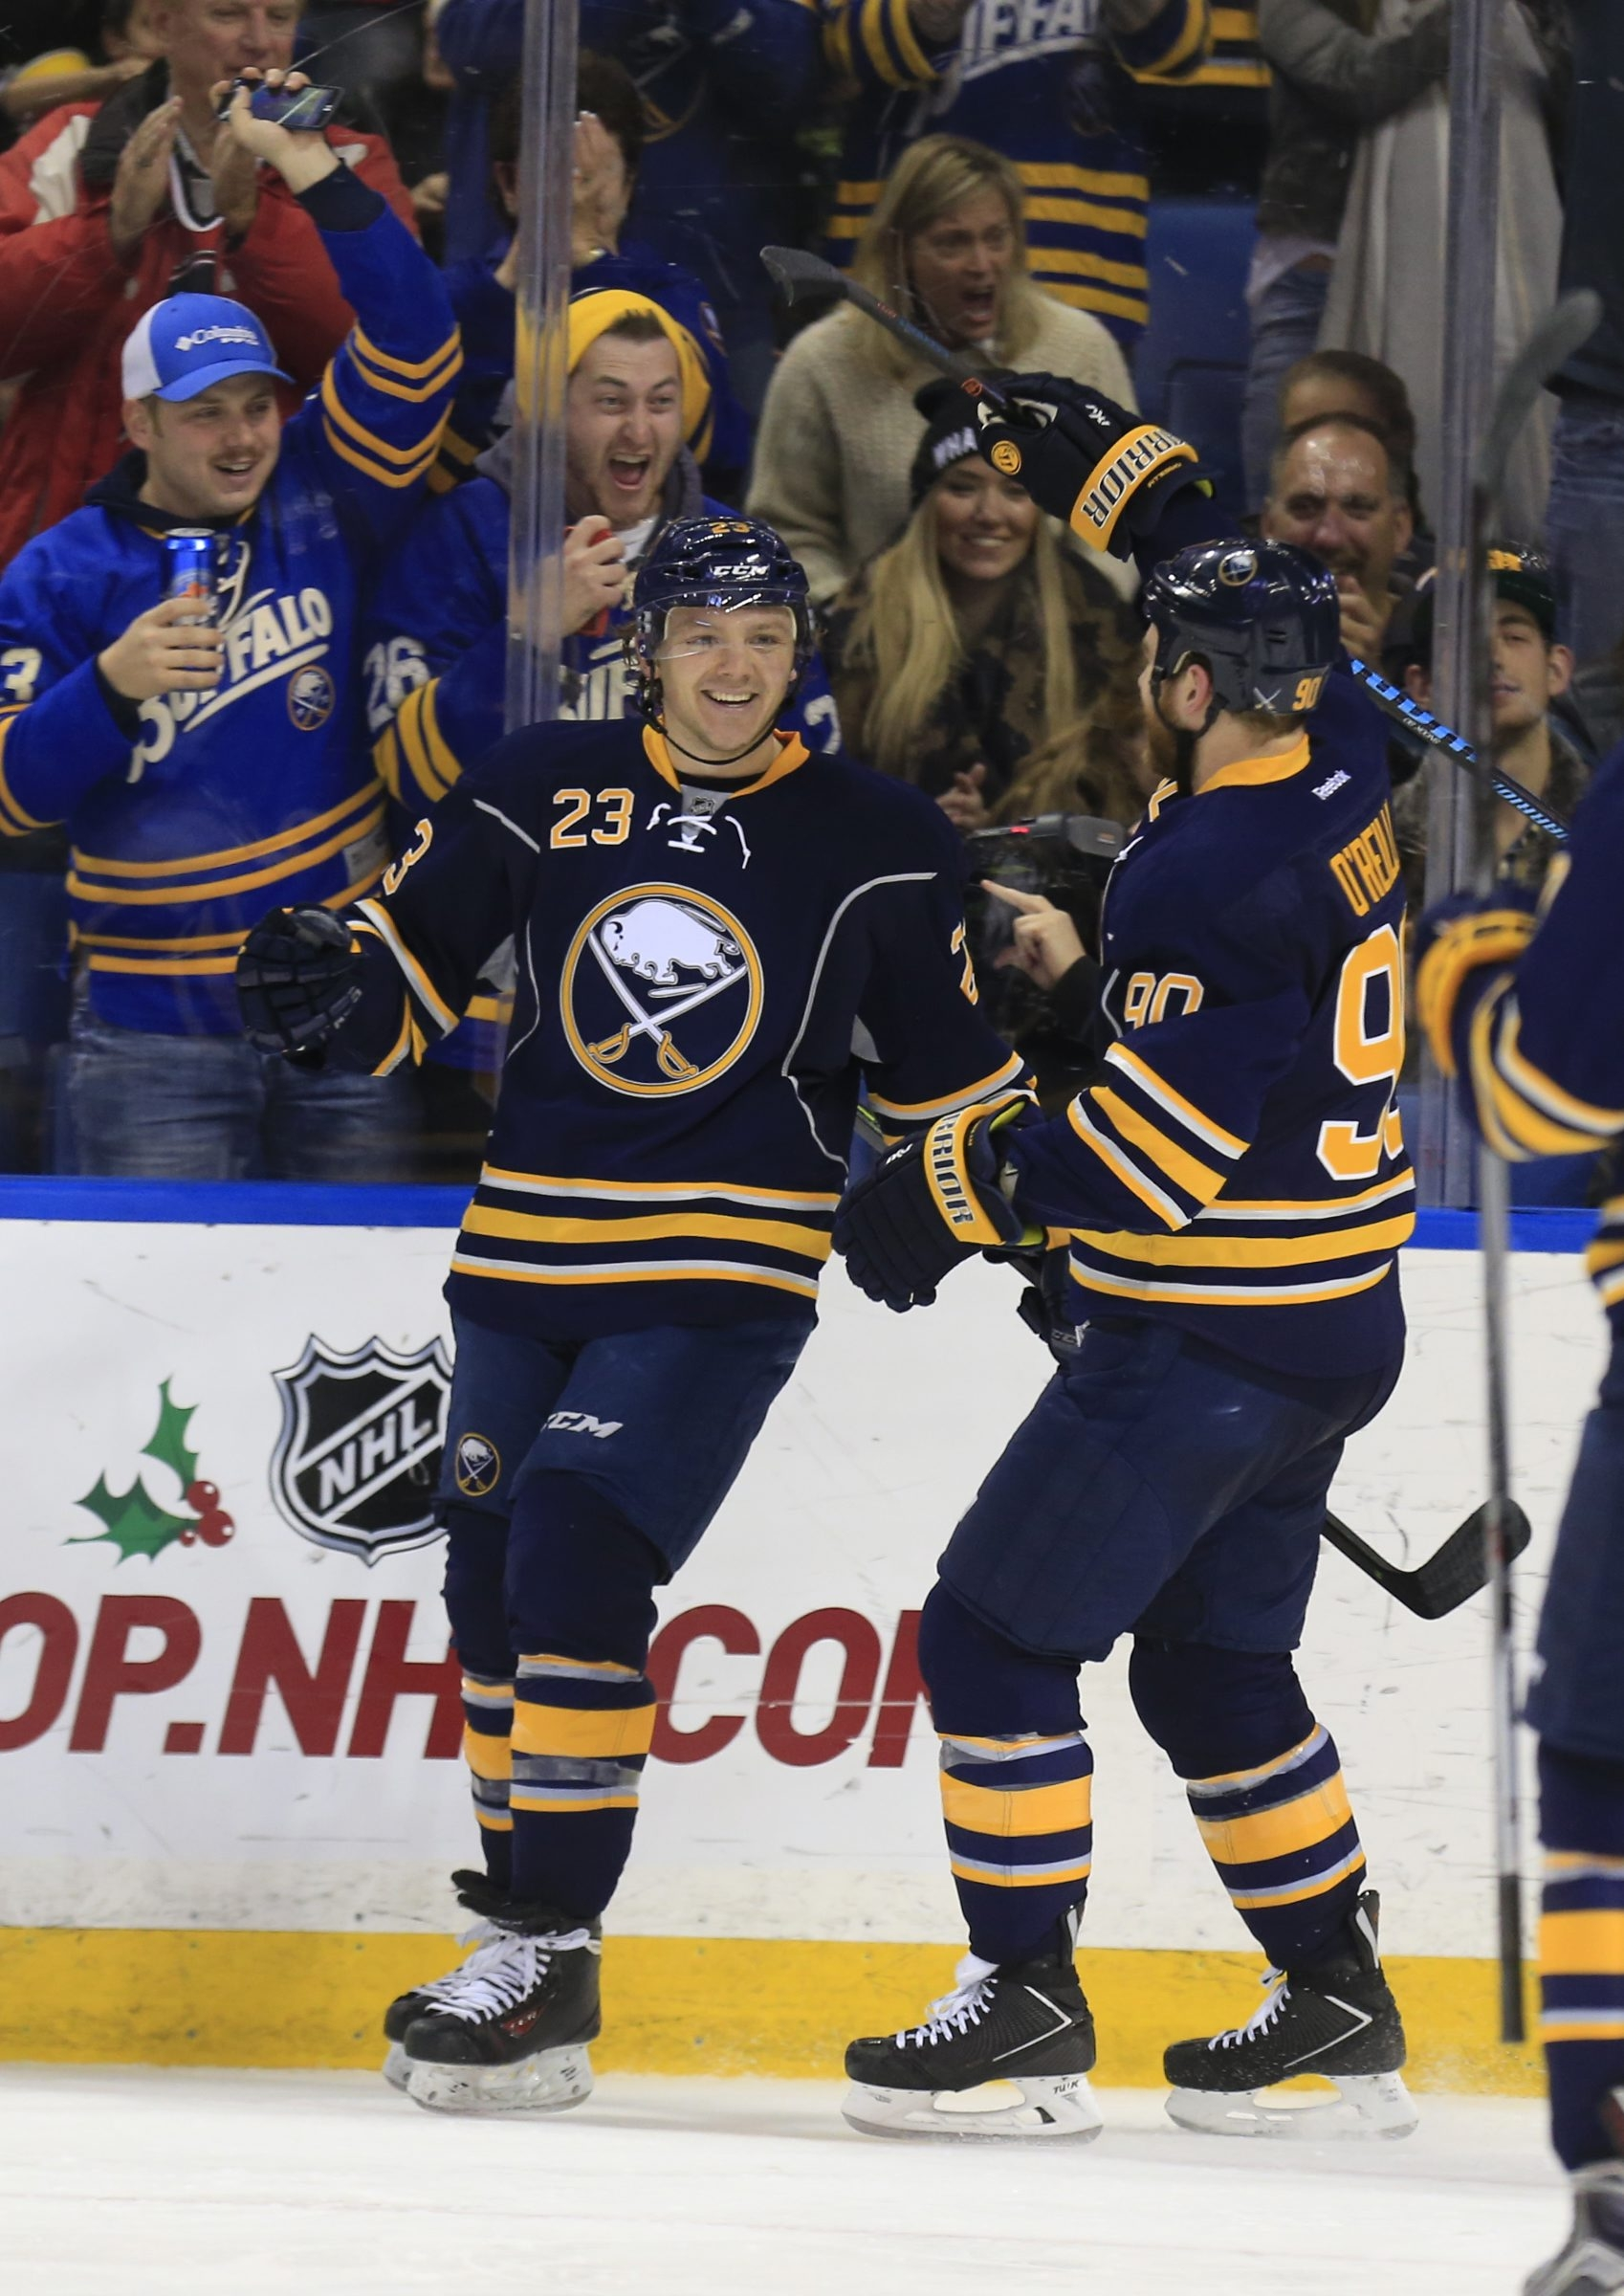 Bufalo Sabre Sam Reinhart celebrates his goal with Ryan O'Reilly against the Arizona Coyotes during second period action at the First Niagara Center on Friday, Dec. 4, 2015. (Harry Scull Jr./Buffalo News)